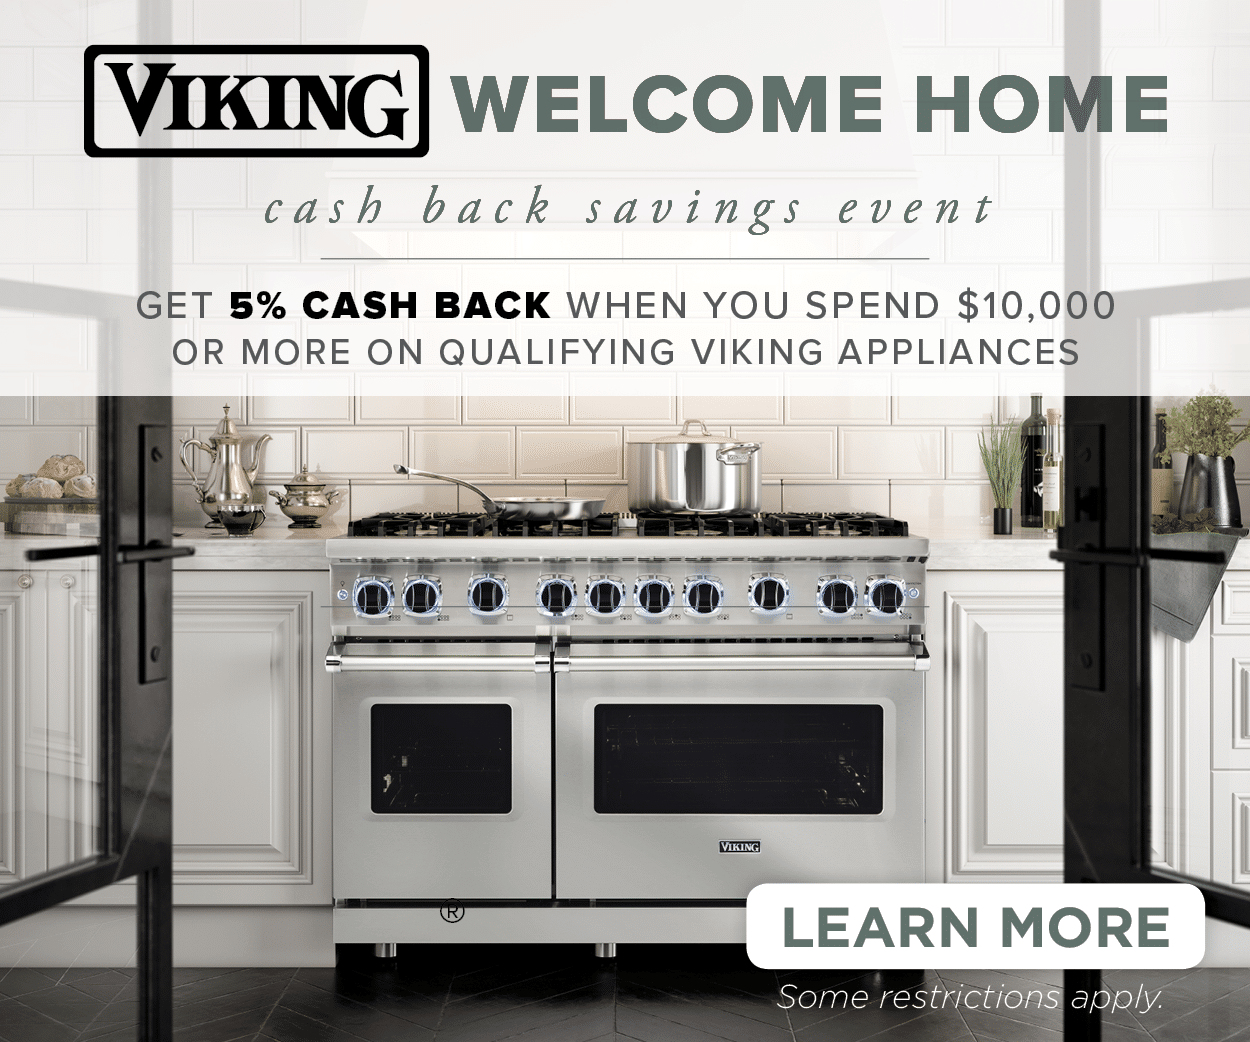 Come Home To A Viking Sales Event | Capital Distributing Dallas TX